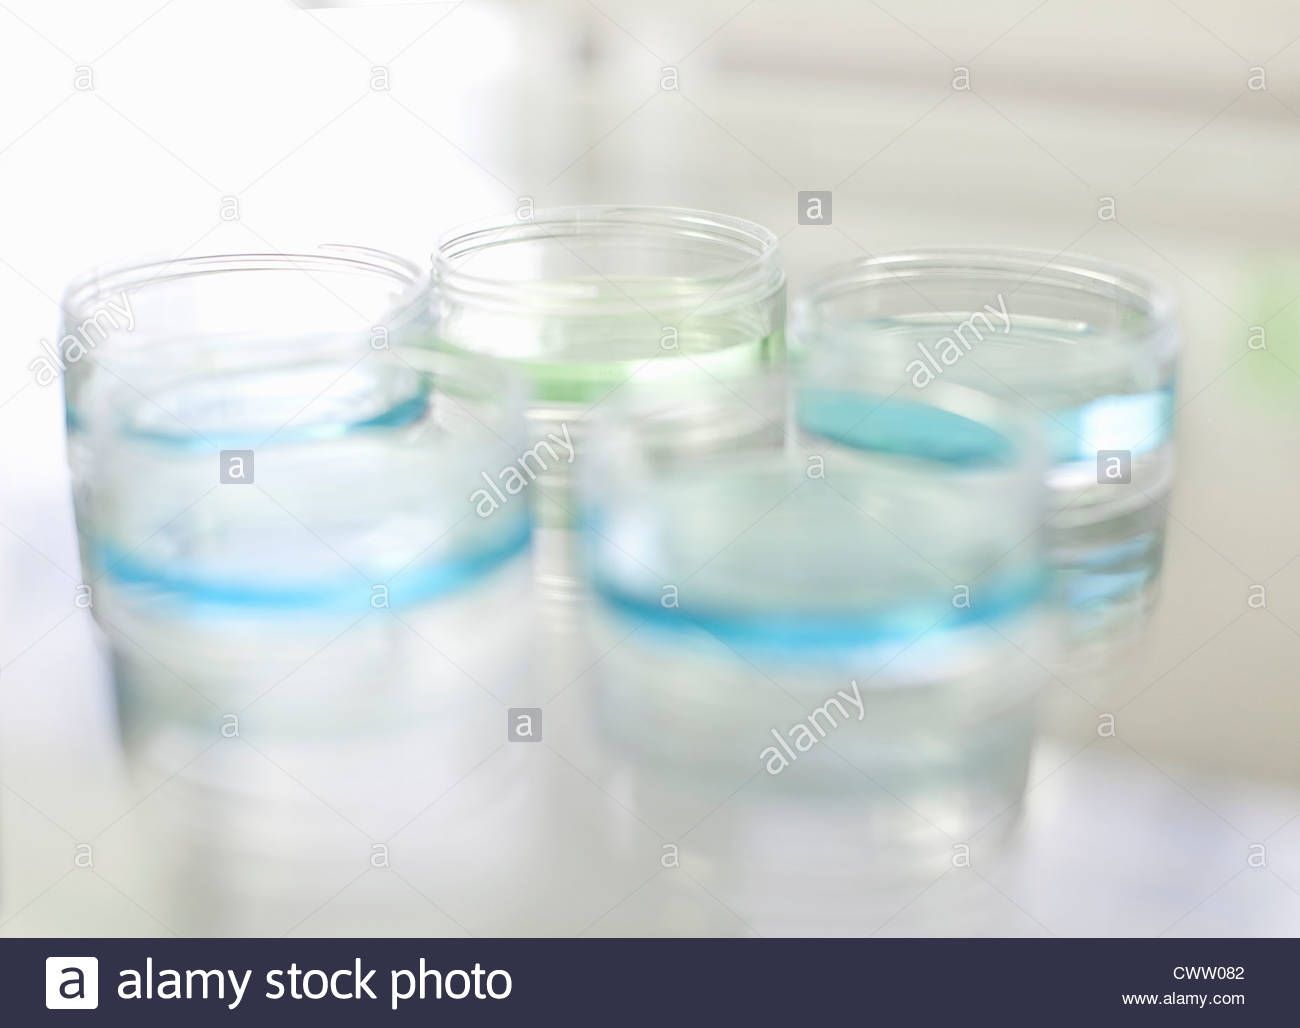 Petri dishes of liquid in lab - Stock Image